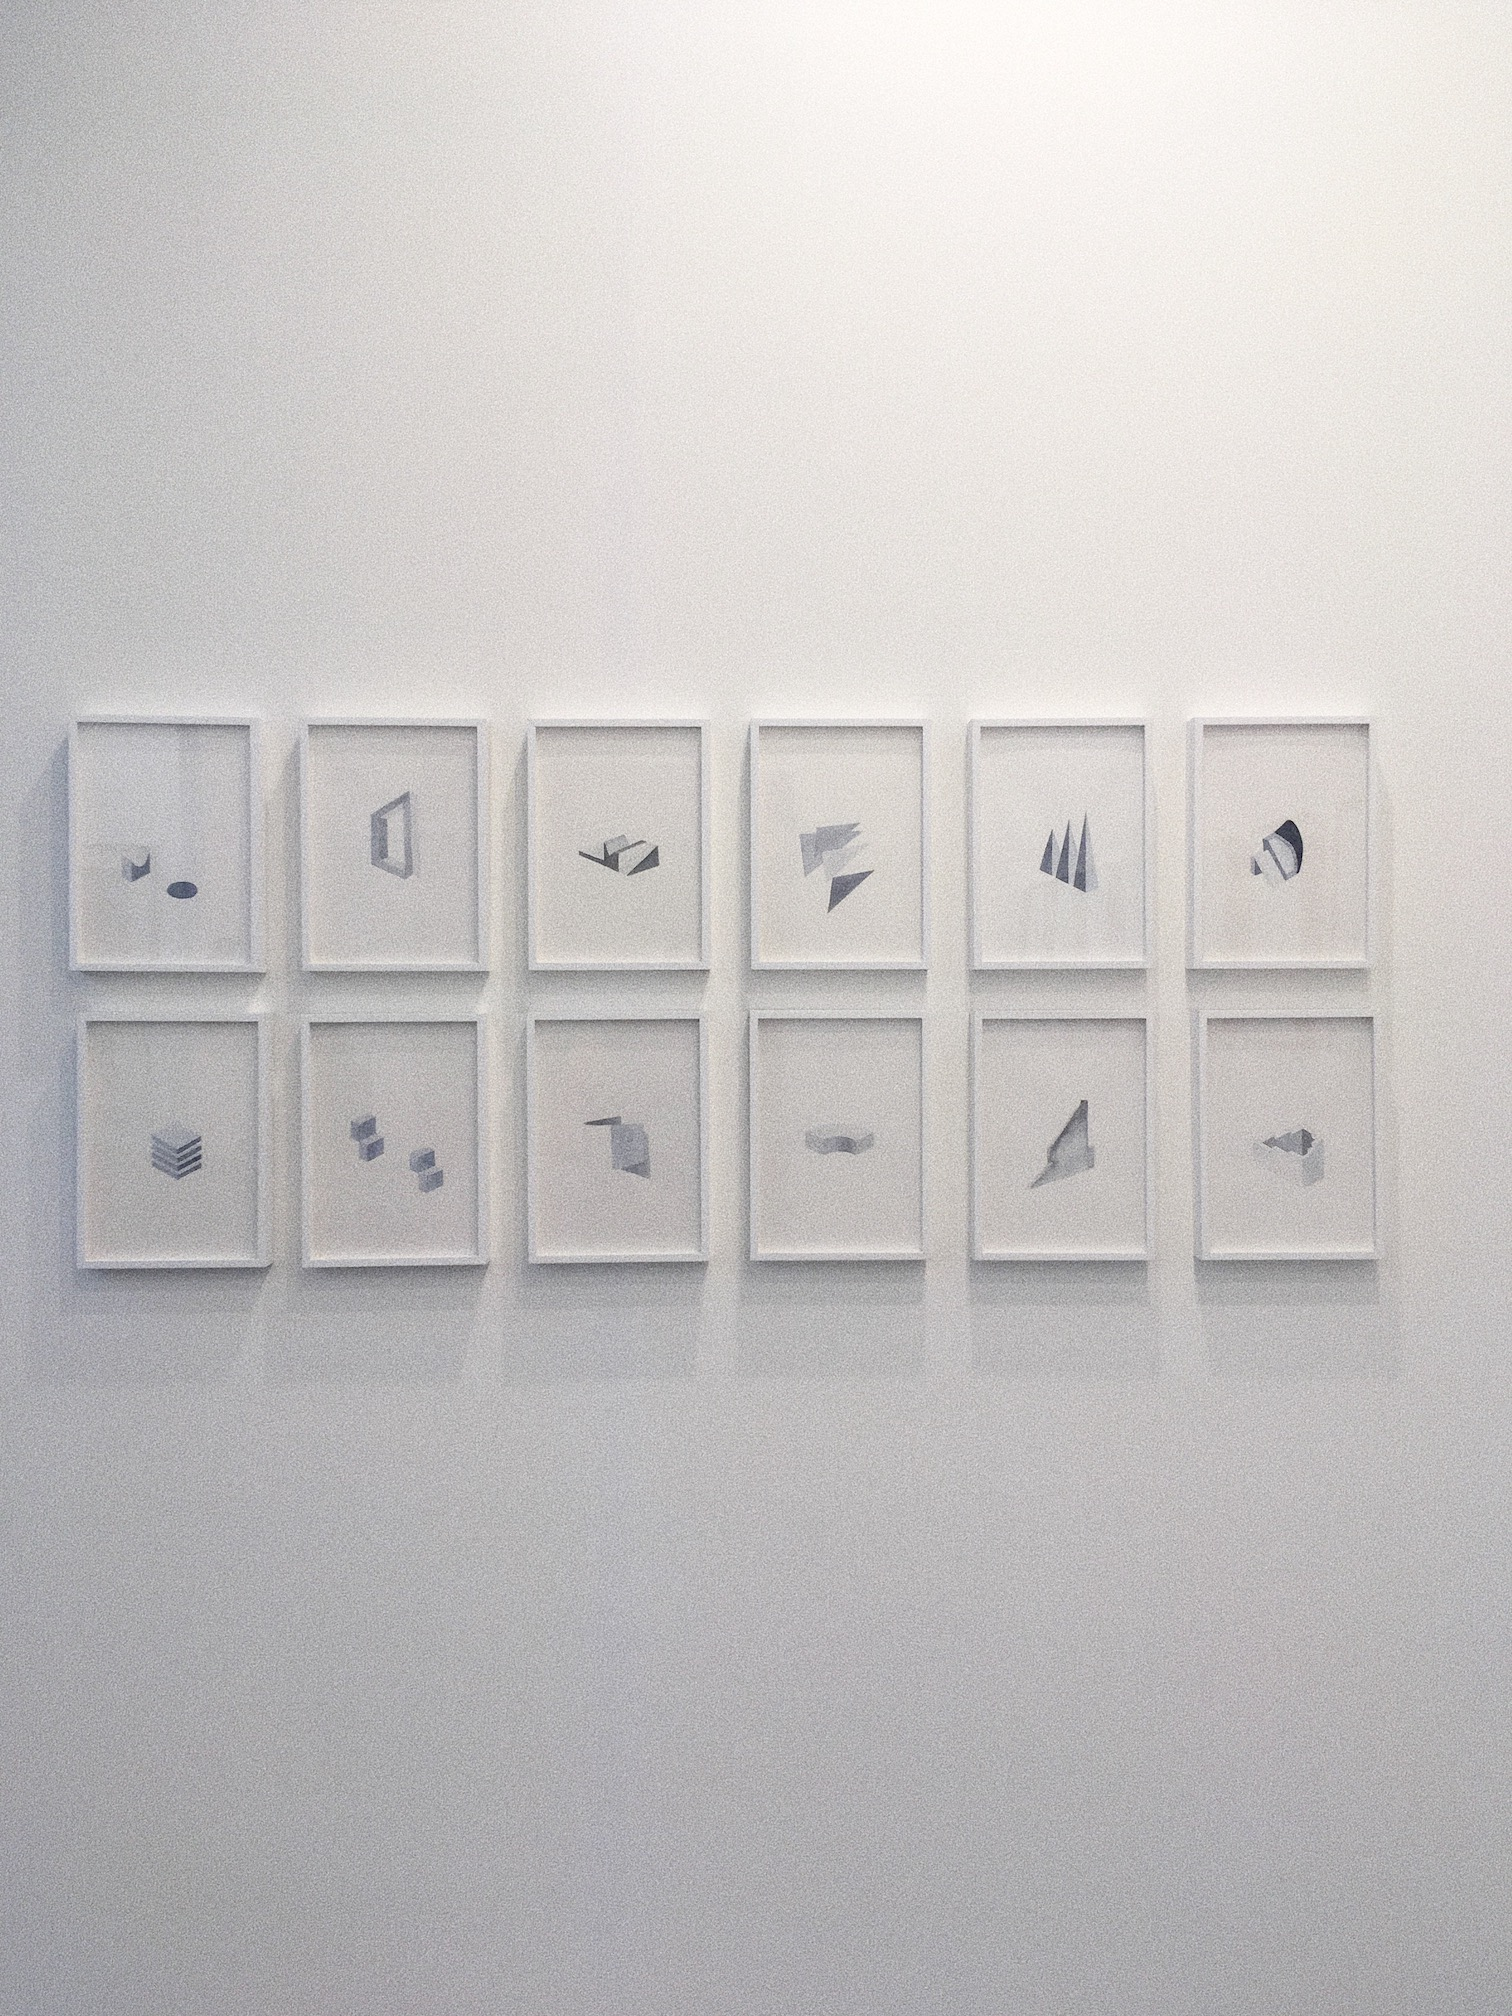 Installation view of drawings by Ayesha Sultana at Experimenter booth, India Art Fair 2018